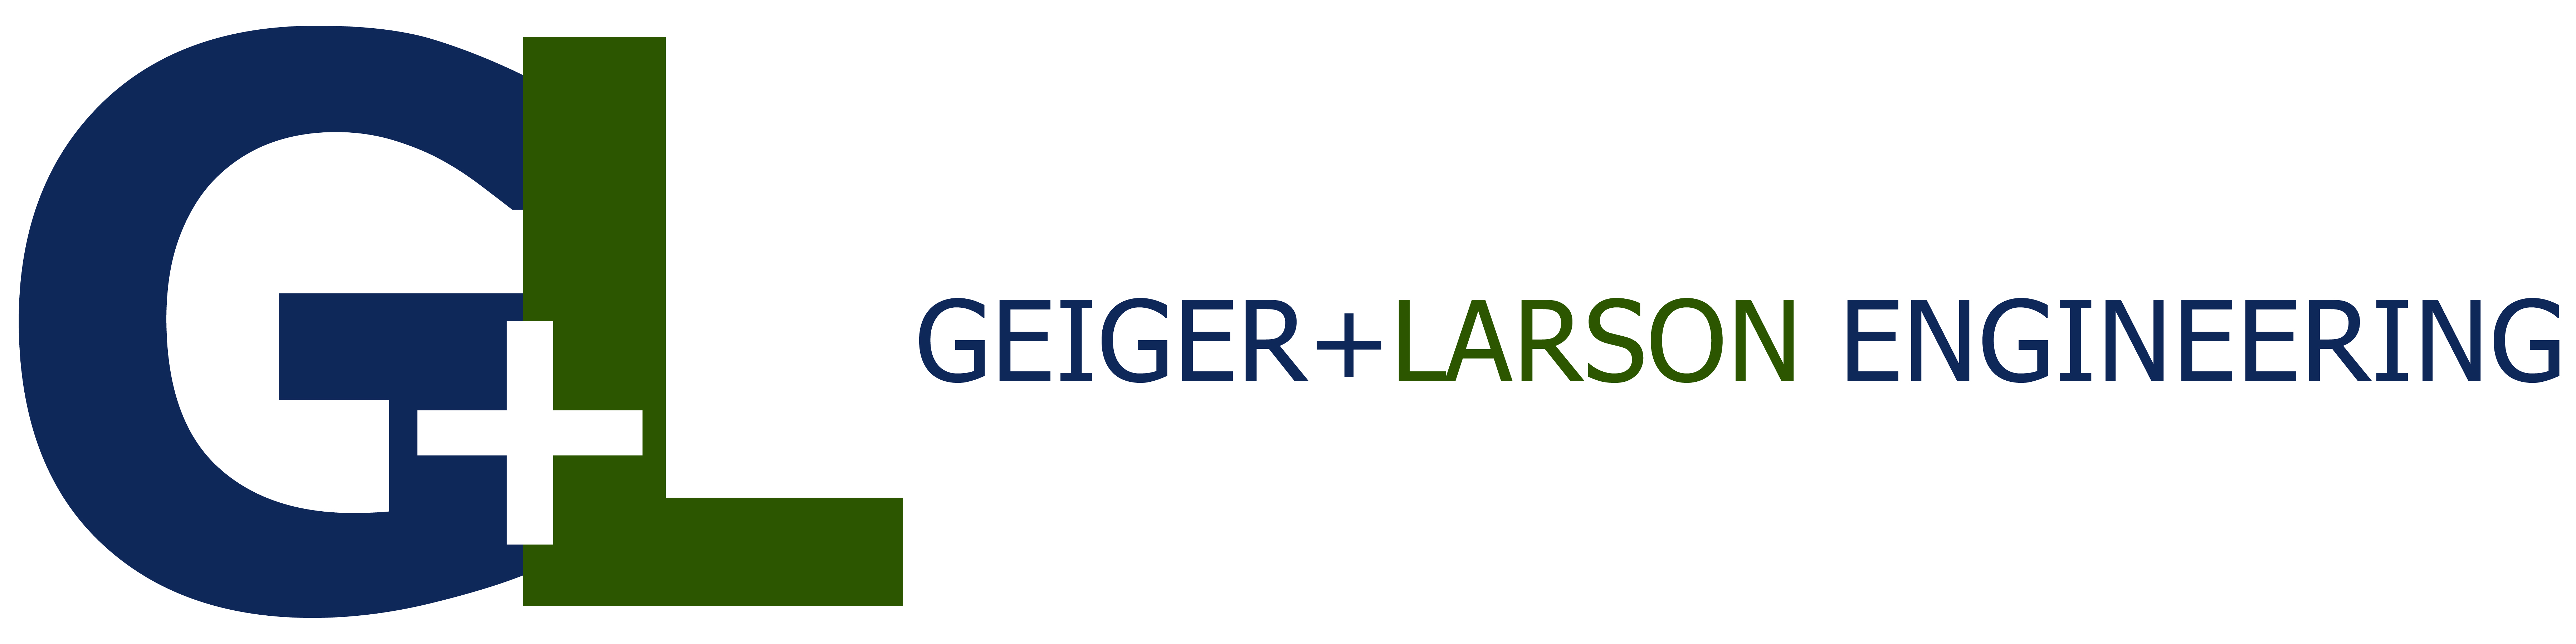 Geiger & Larson Engineering Inc.